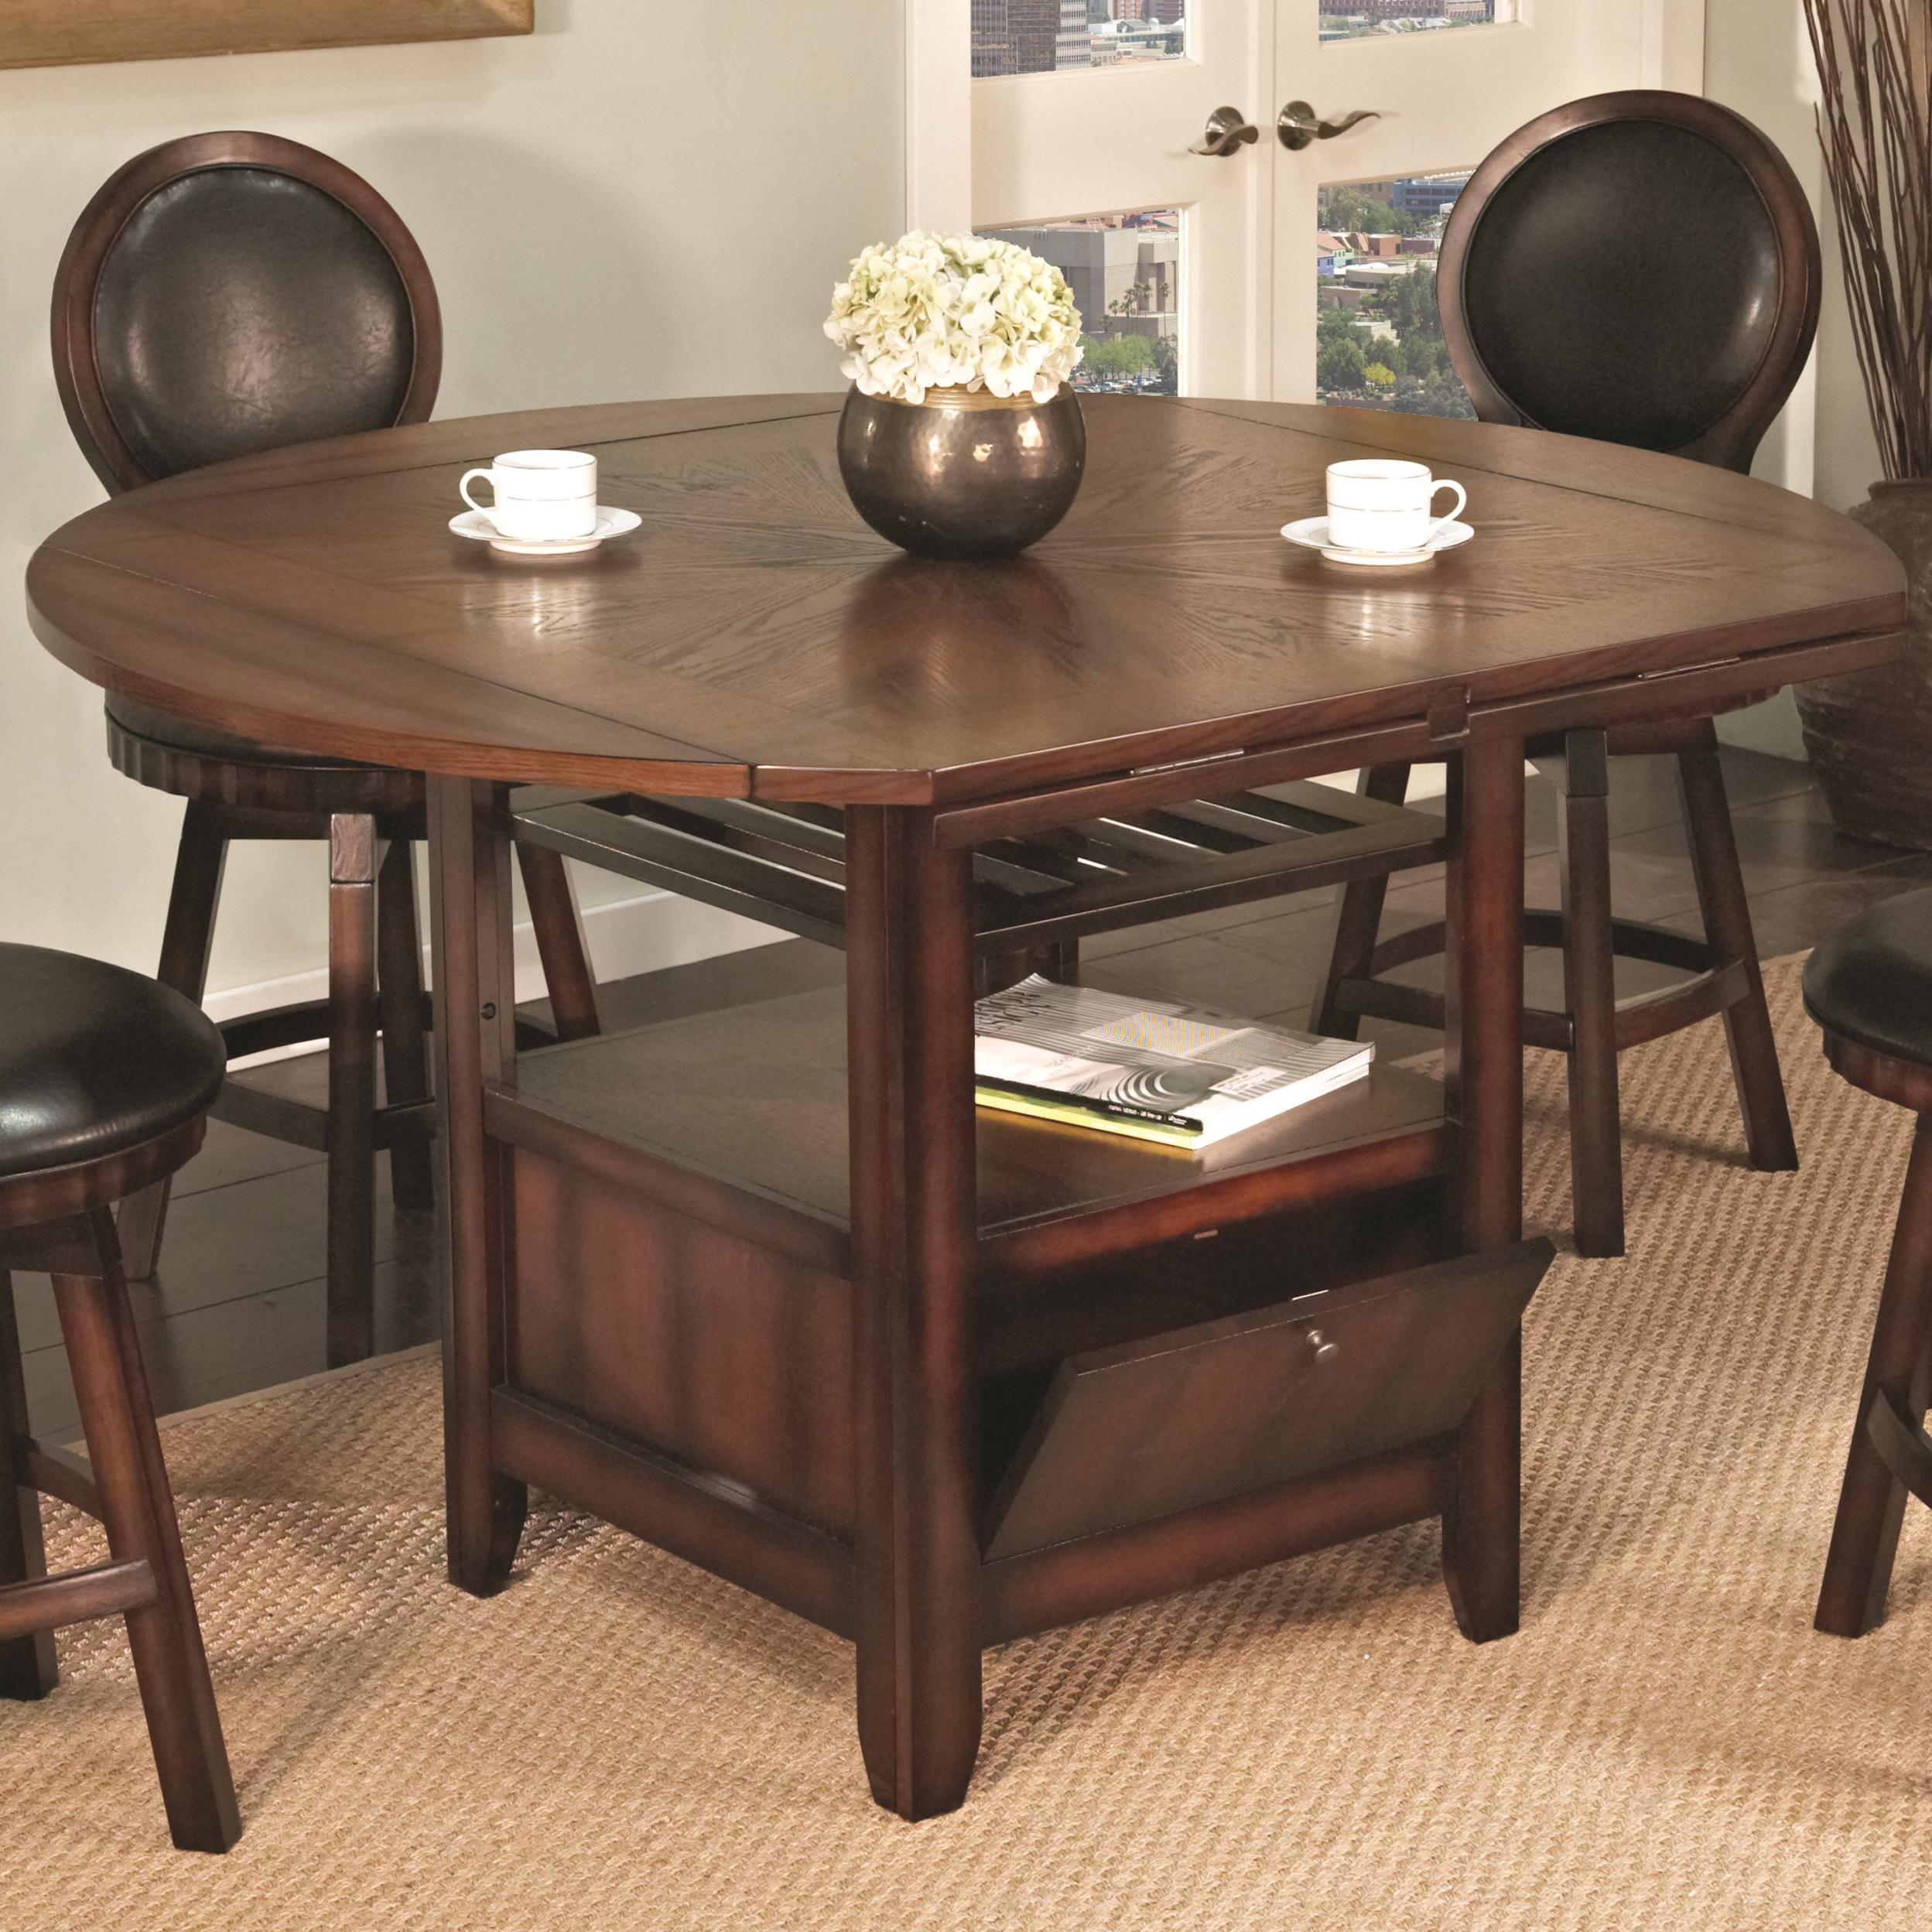 Us Furniture Inc: U.S. Furniture Inc 2251/2252 Round Top Pub Table With